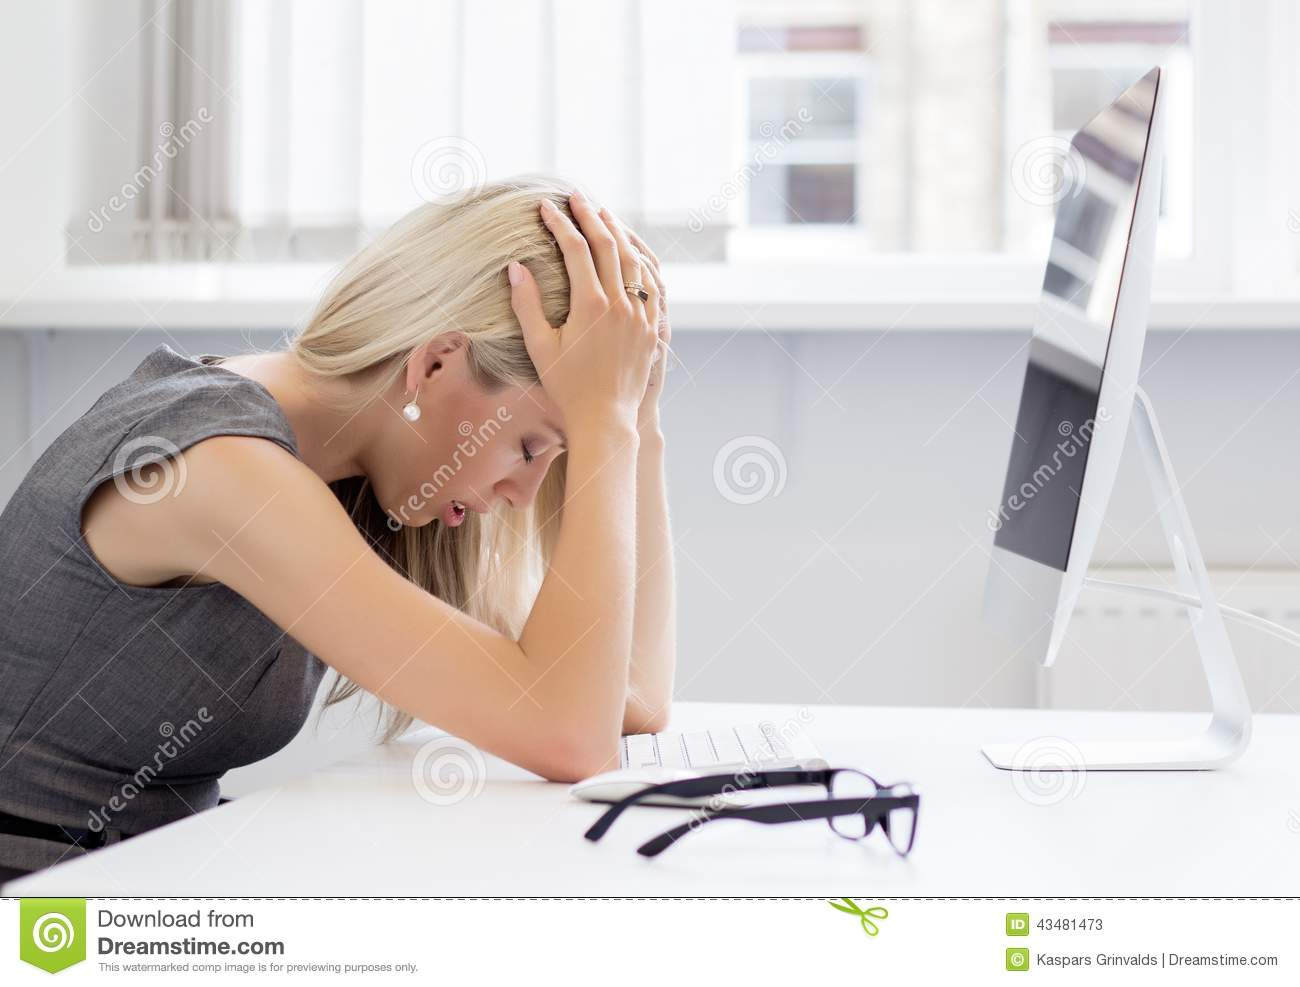 Overworked and frustrated young woman in front of computer